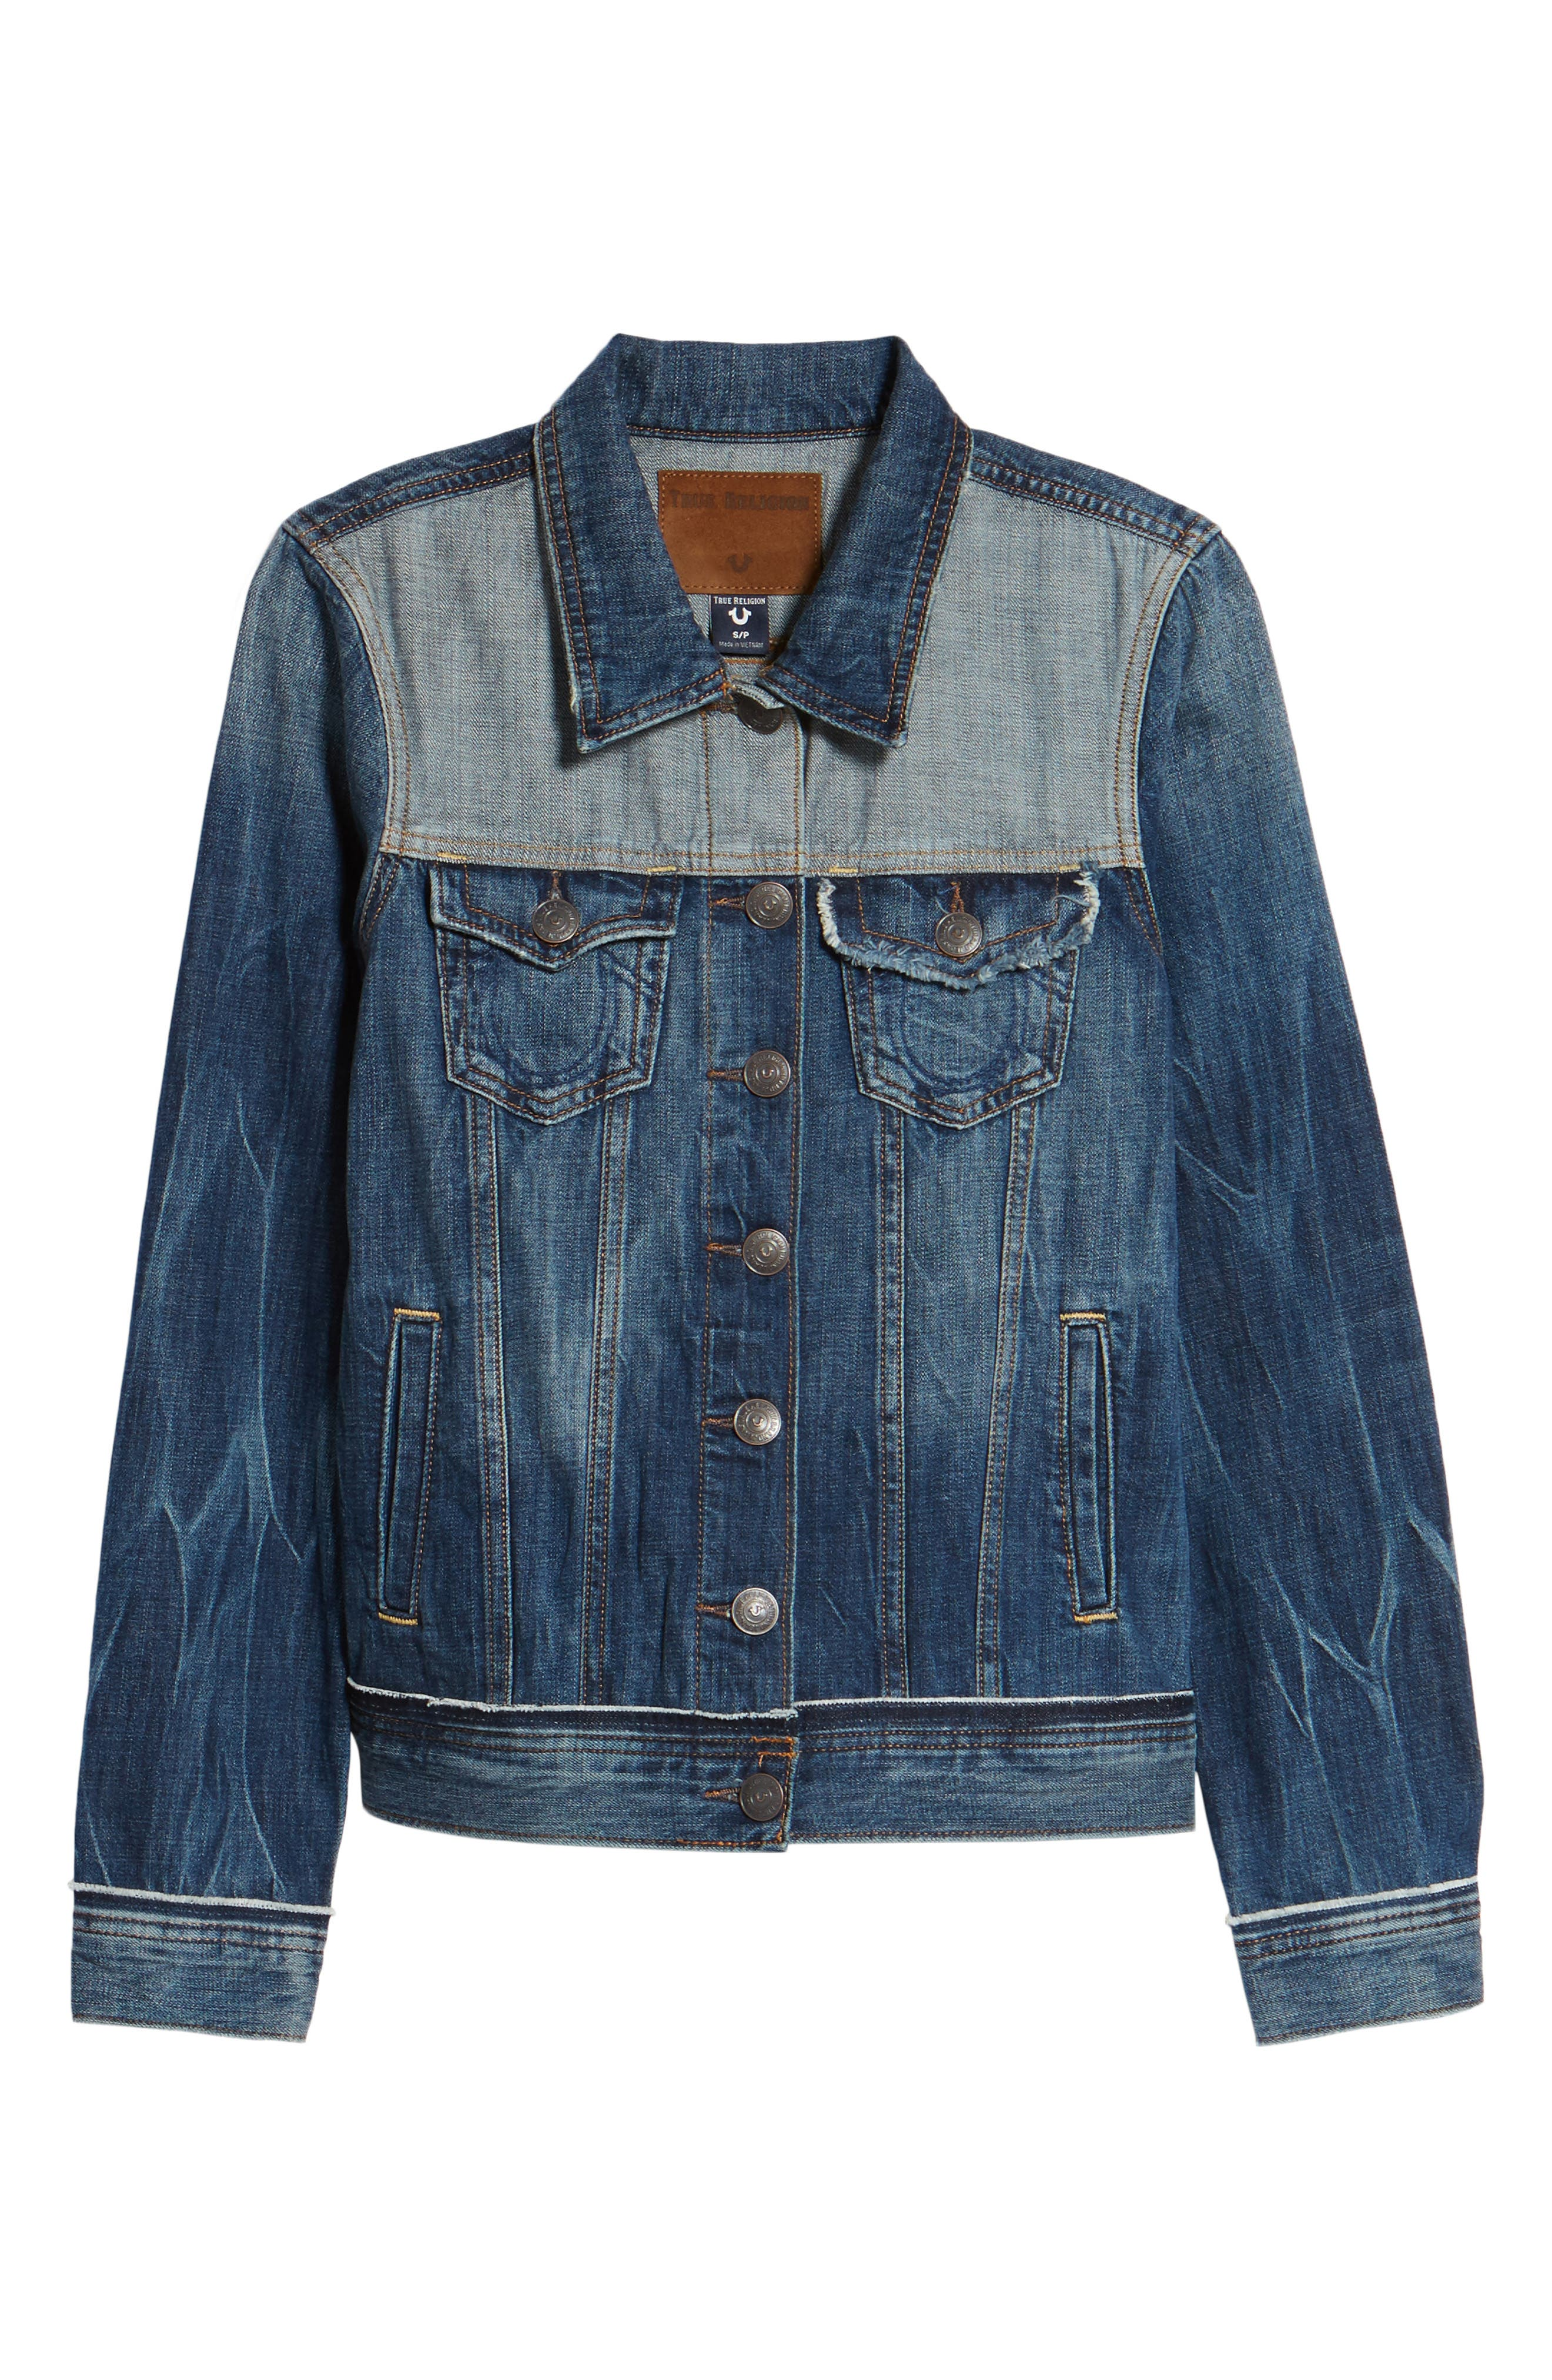 Let Out Seams Denim Jacket,                             Alternate thumbnail 6, color,                             Broken Record